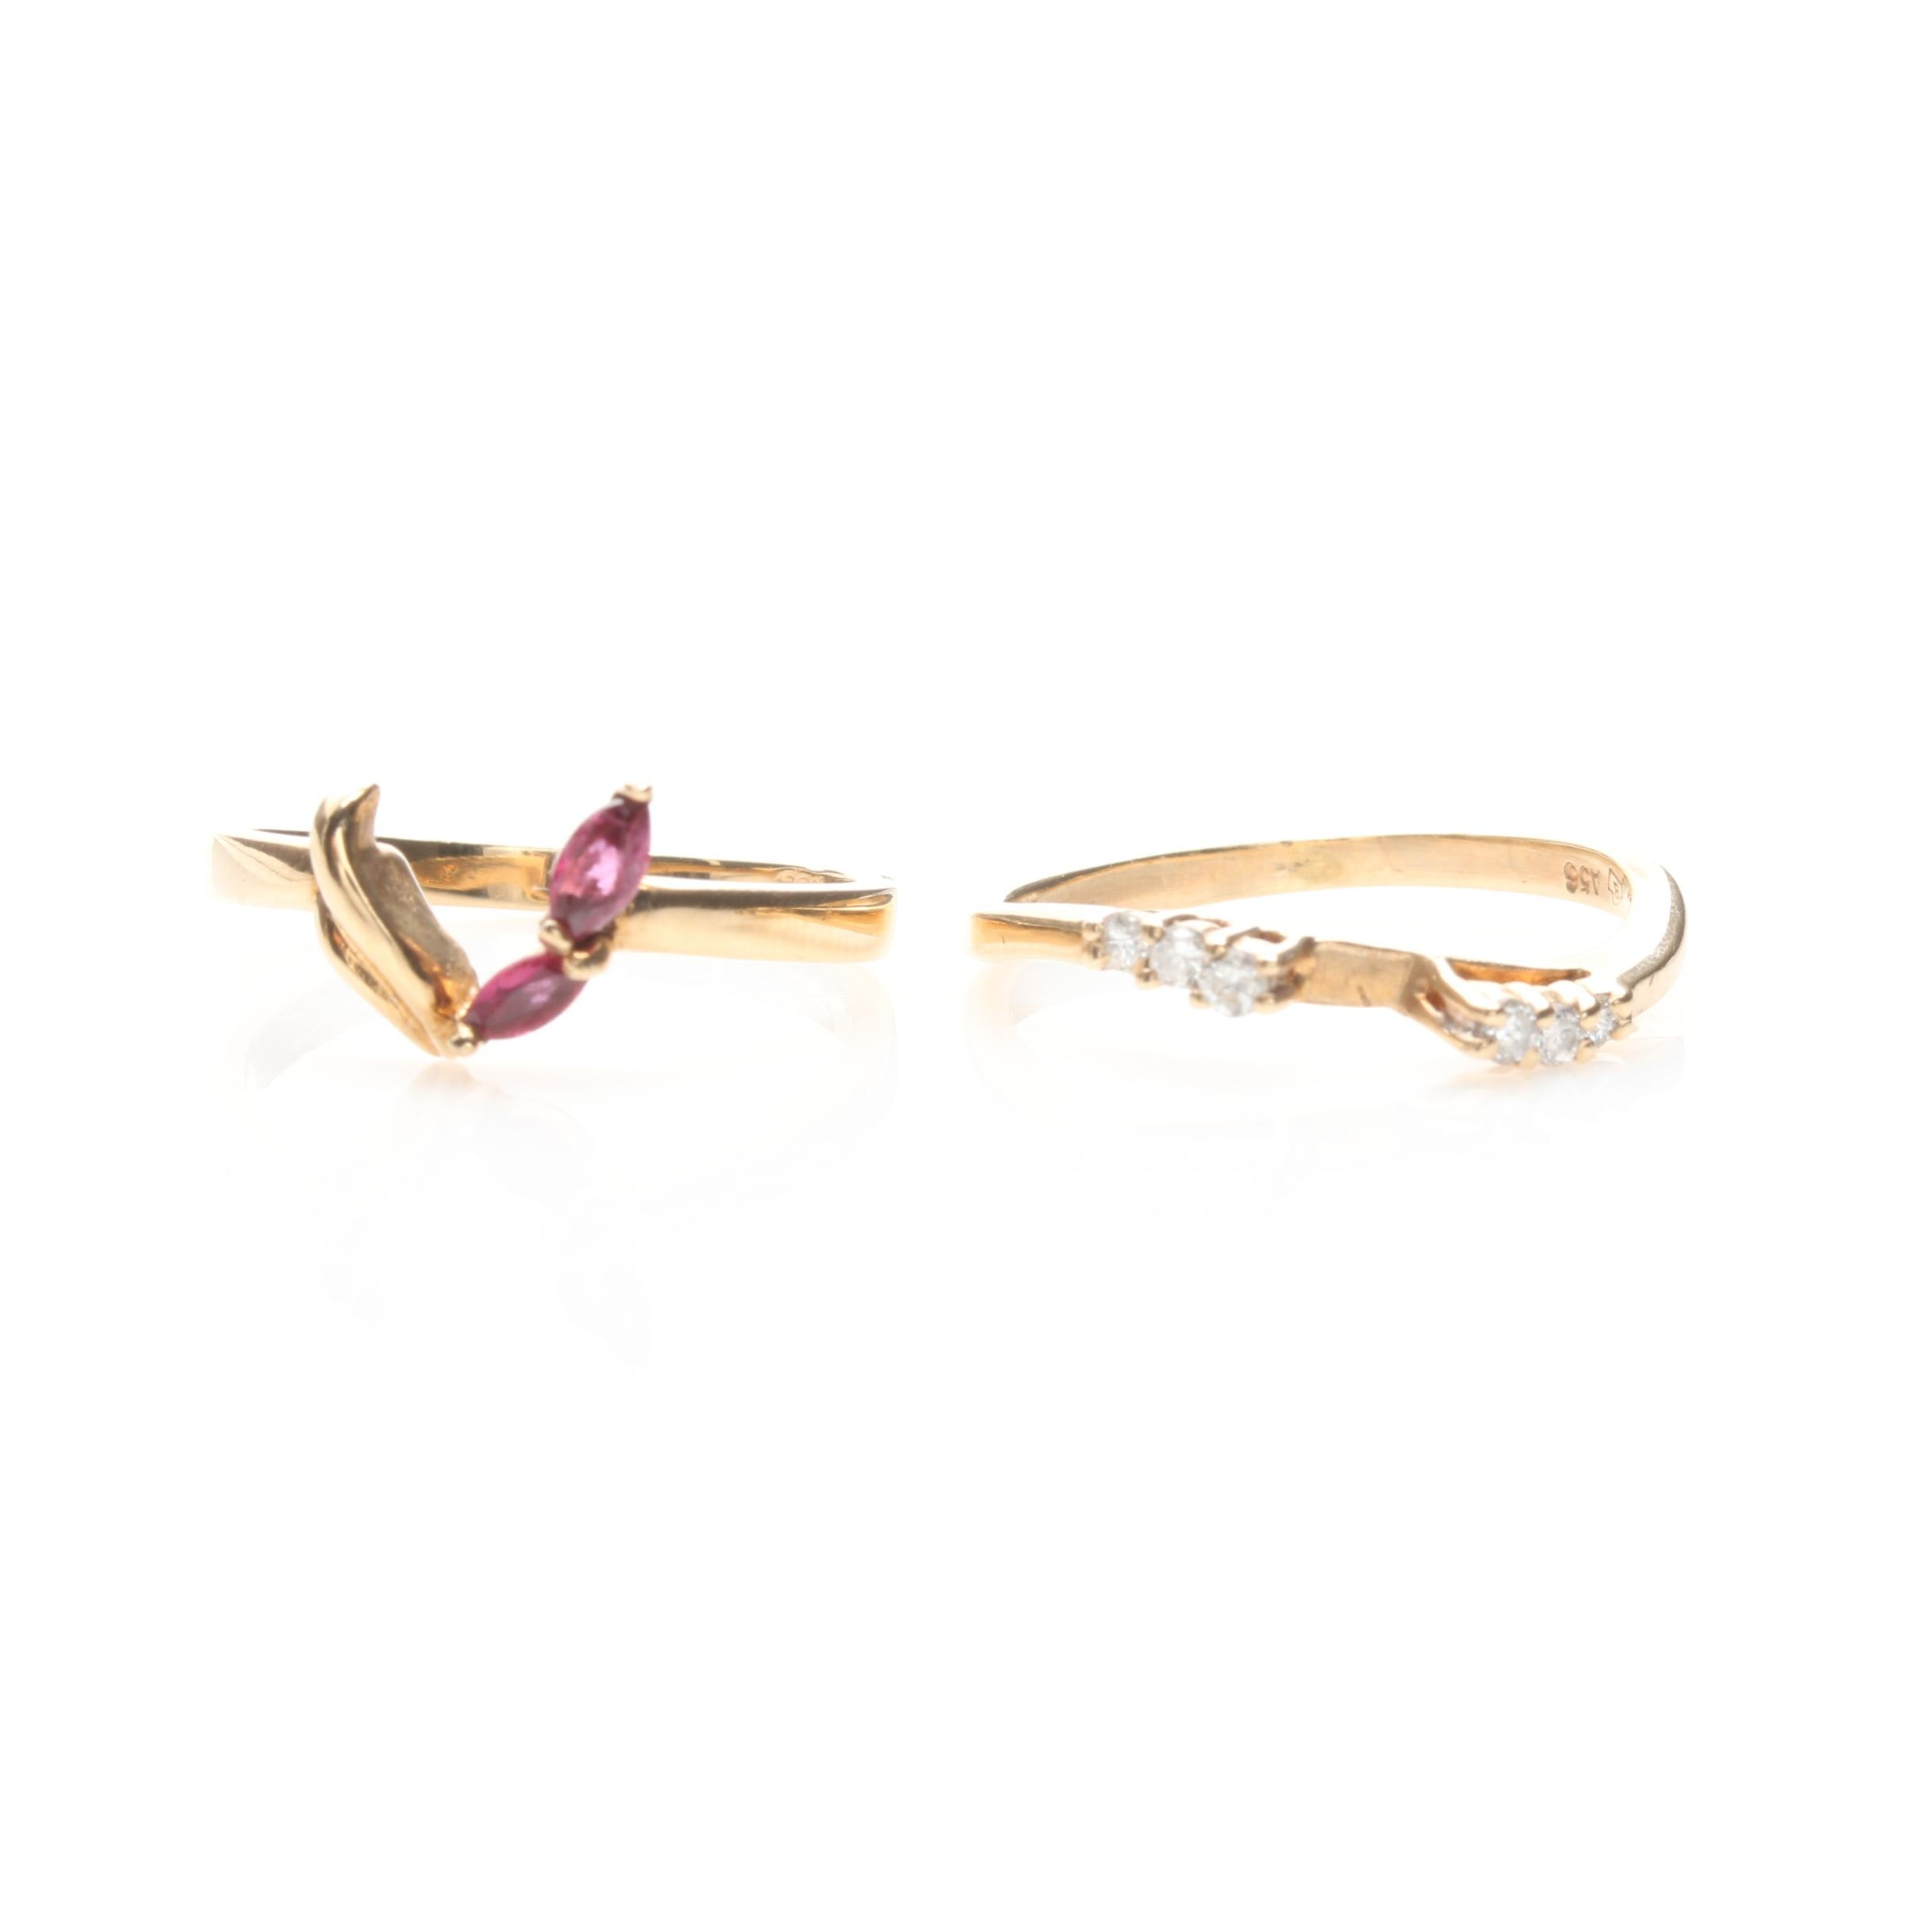 10K Yellow Gold Ruby and Diamond Ring Jacket Selection